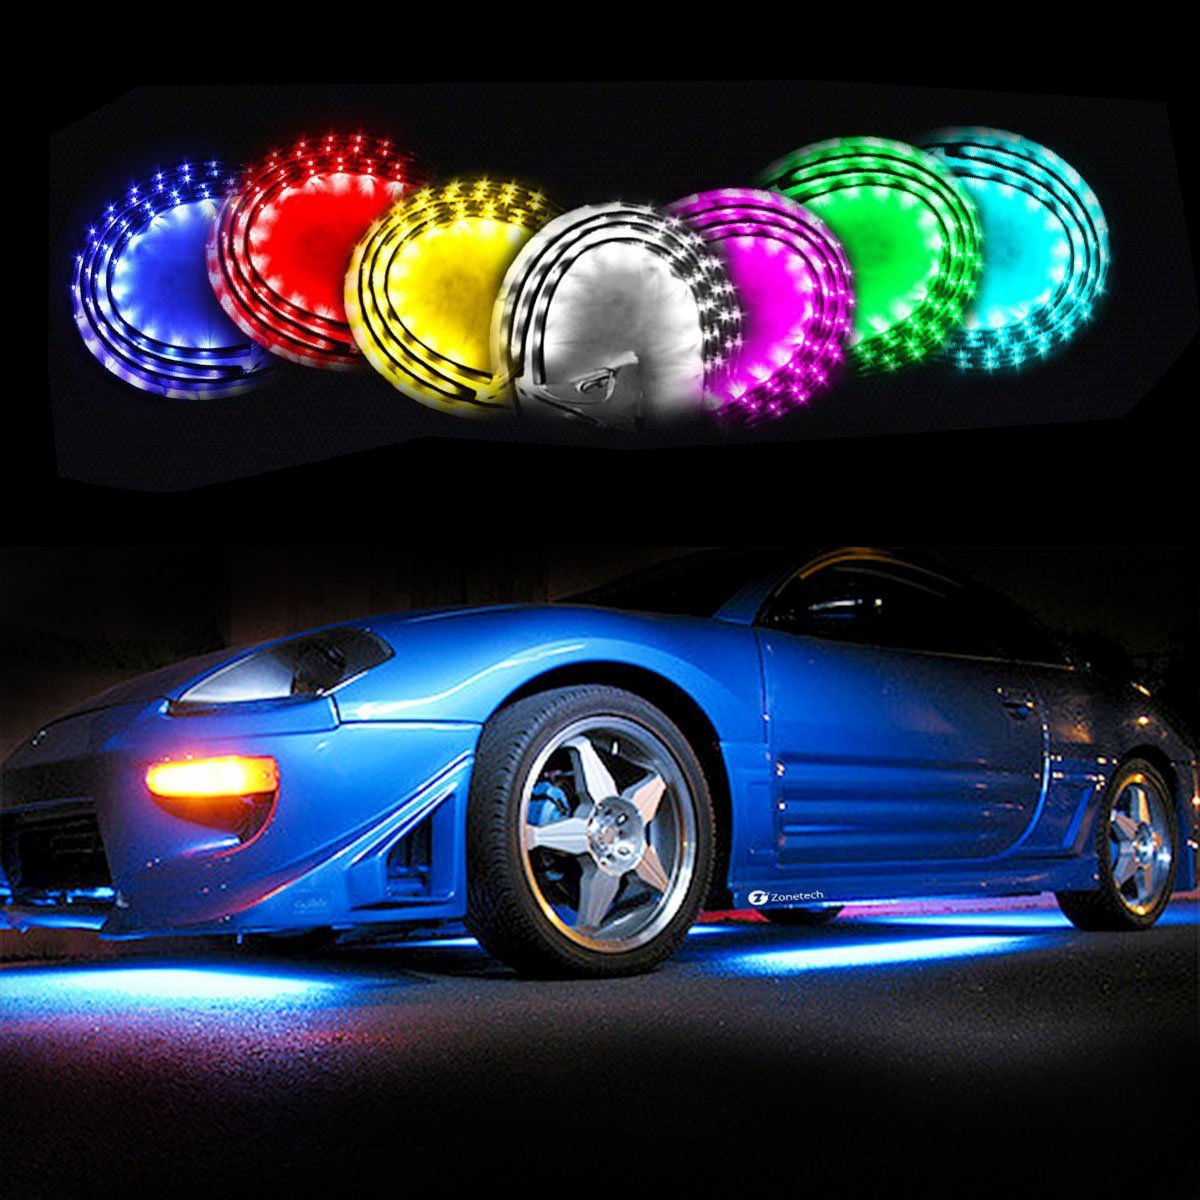 Zone Tech 7-Color LED Underbody Car Glow System -  Neon Lights Kit with Sound Active Function and Wireless Remote Controller